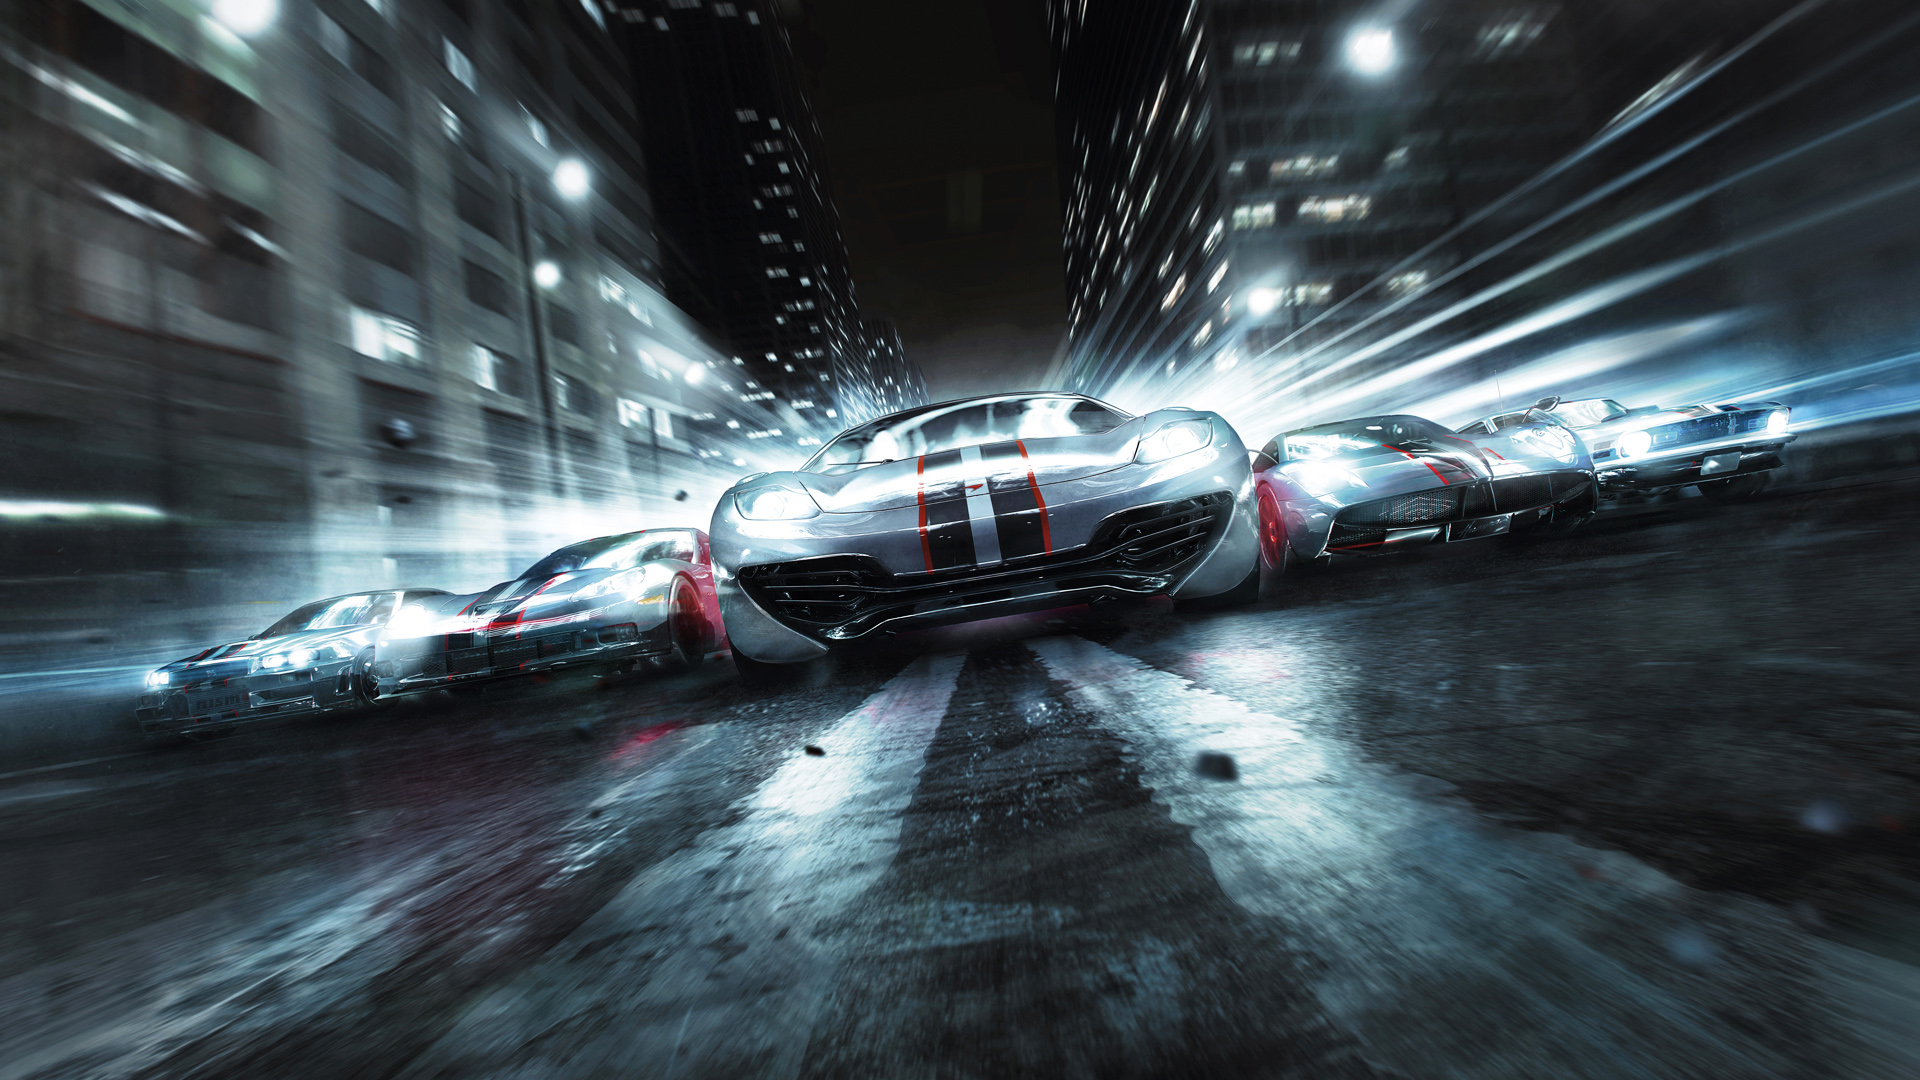 Grid 2 hands-on preview gameplay videos